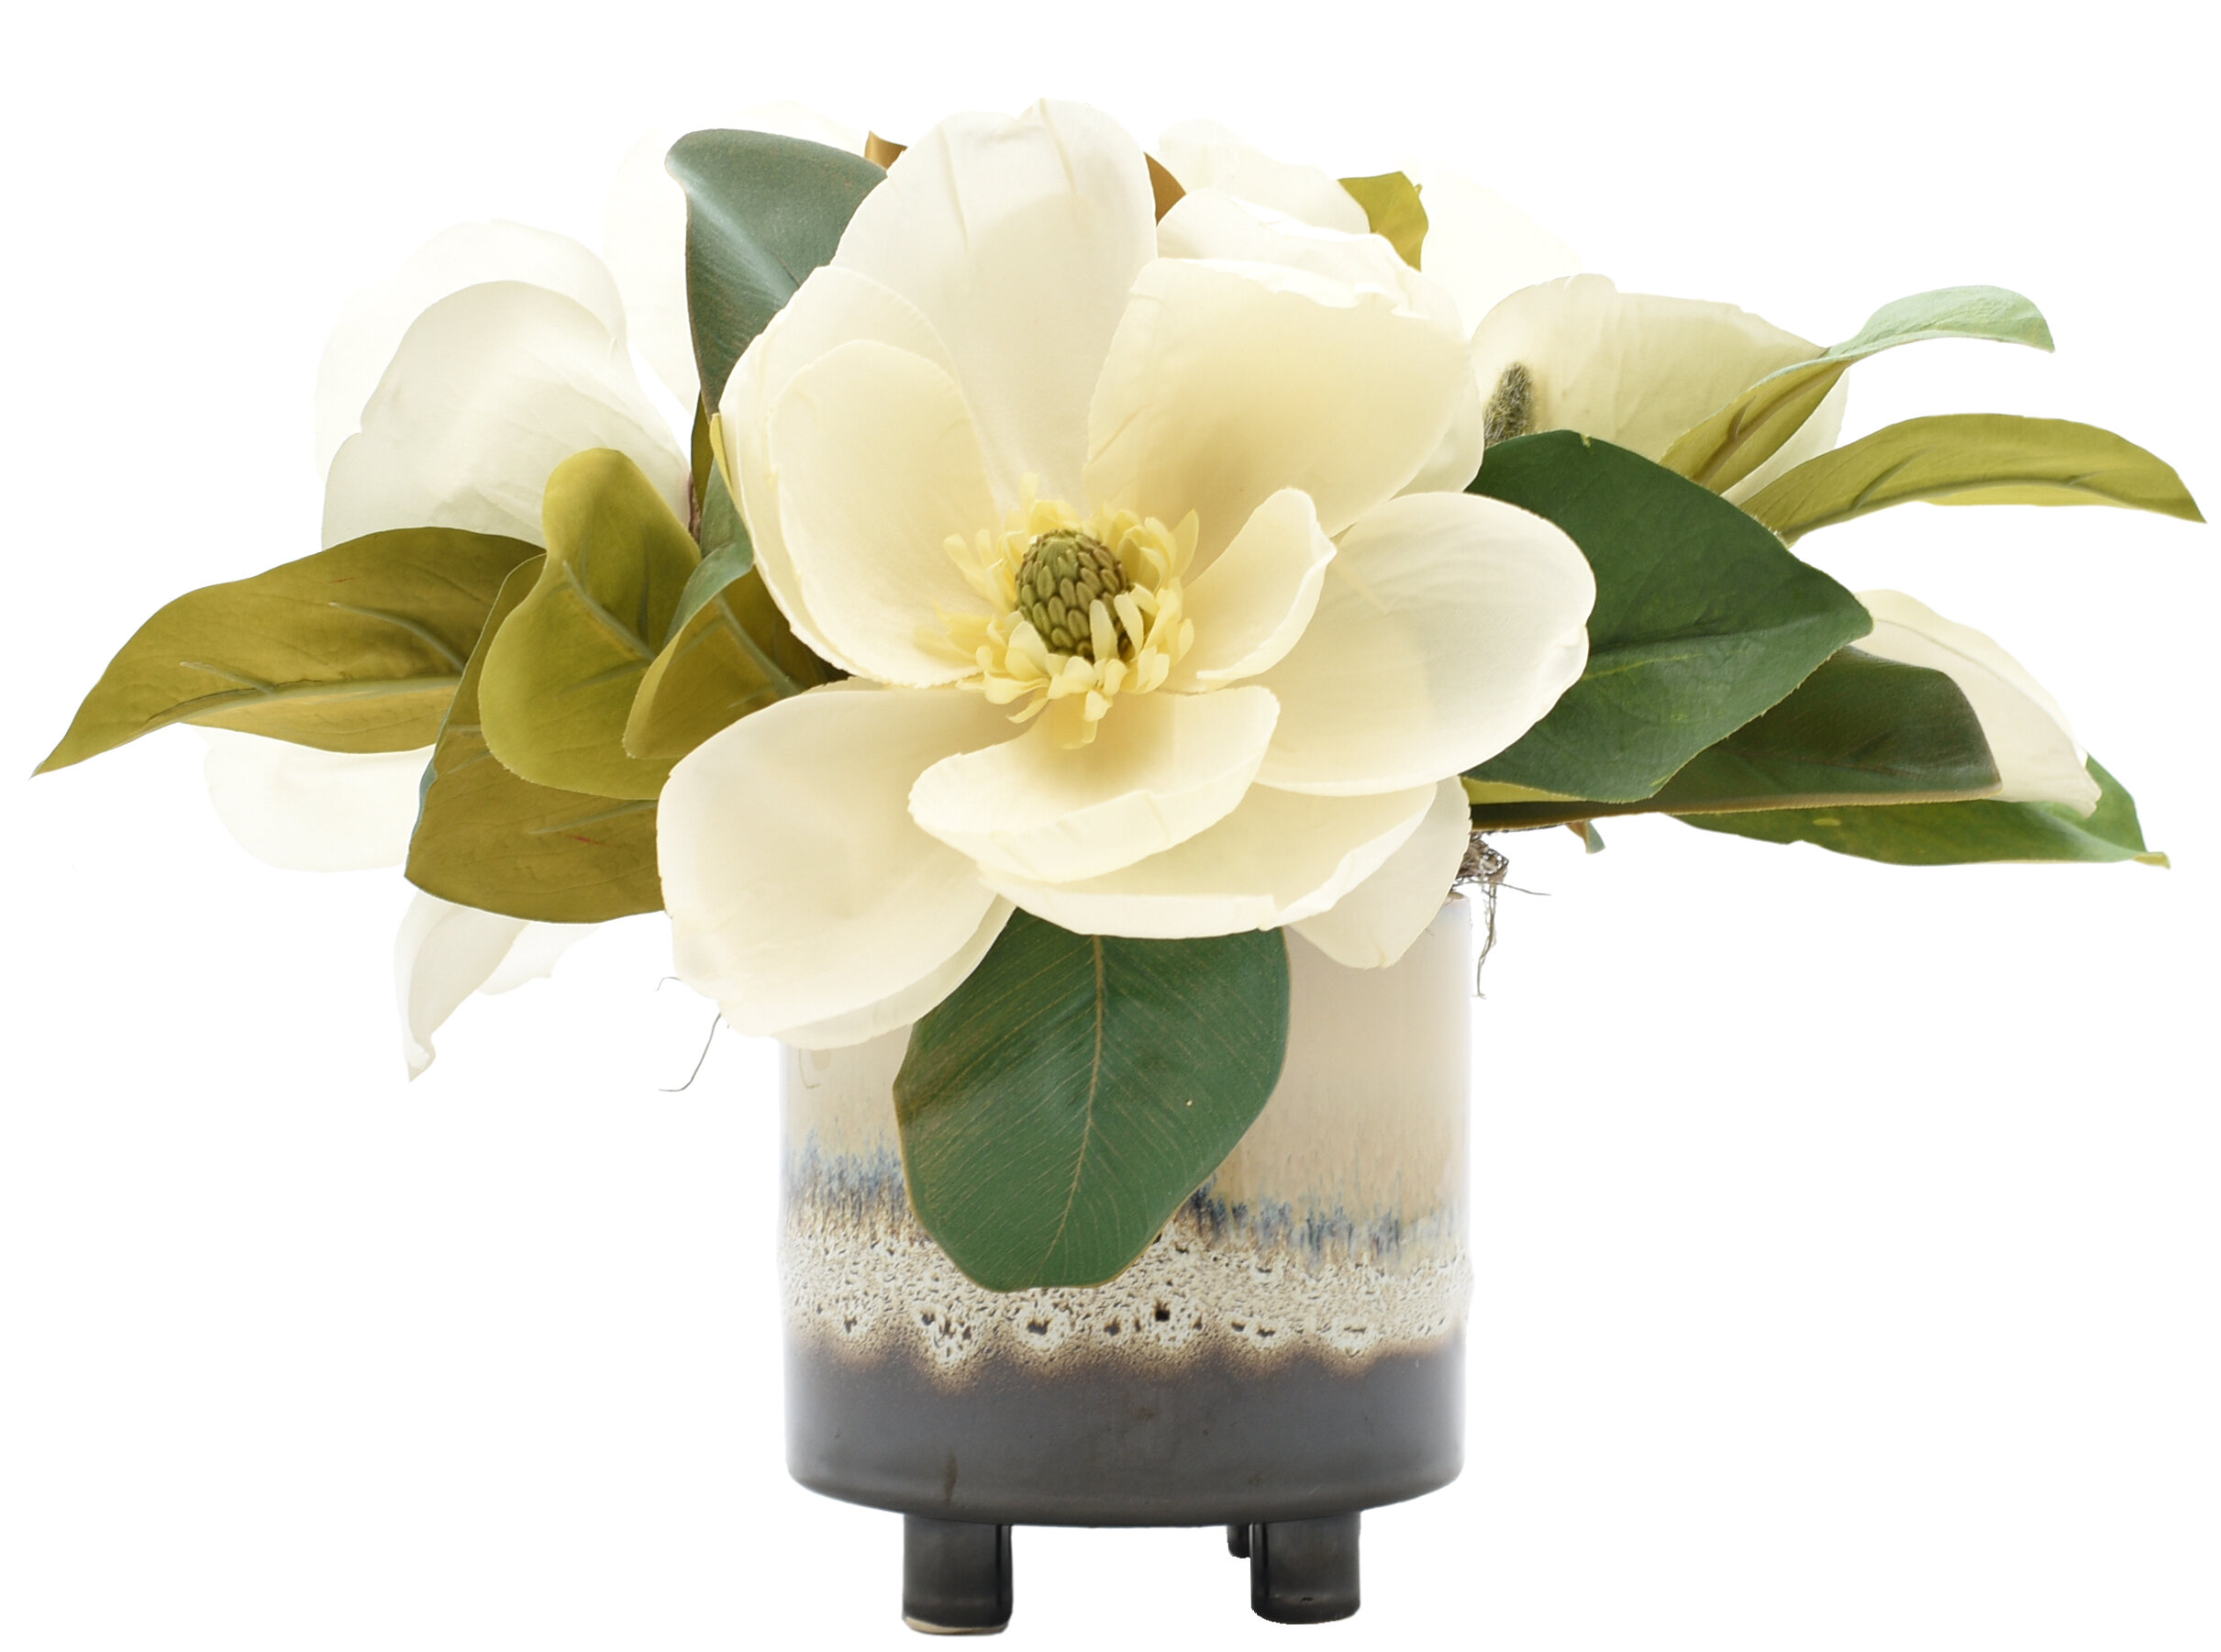 Gracie Oaks Magnolia Floral Arrangement And Centerpiece In Pot Reviews Wayfair